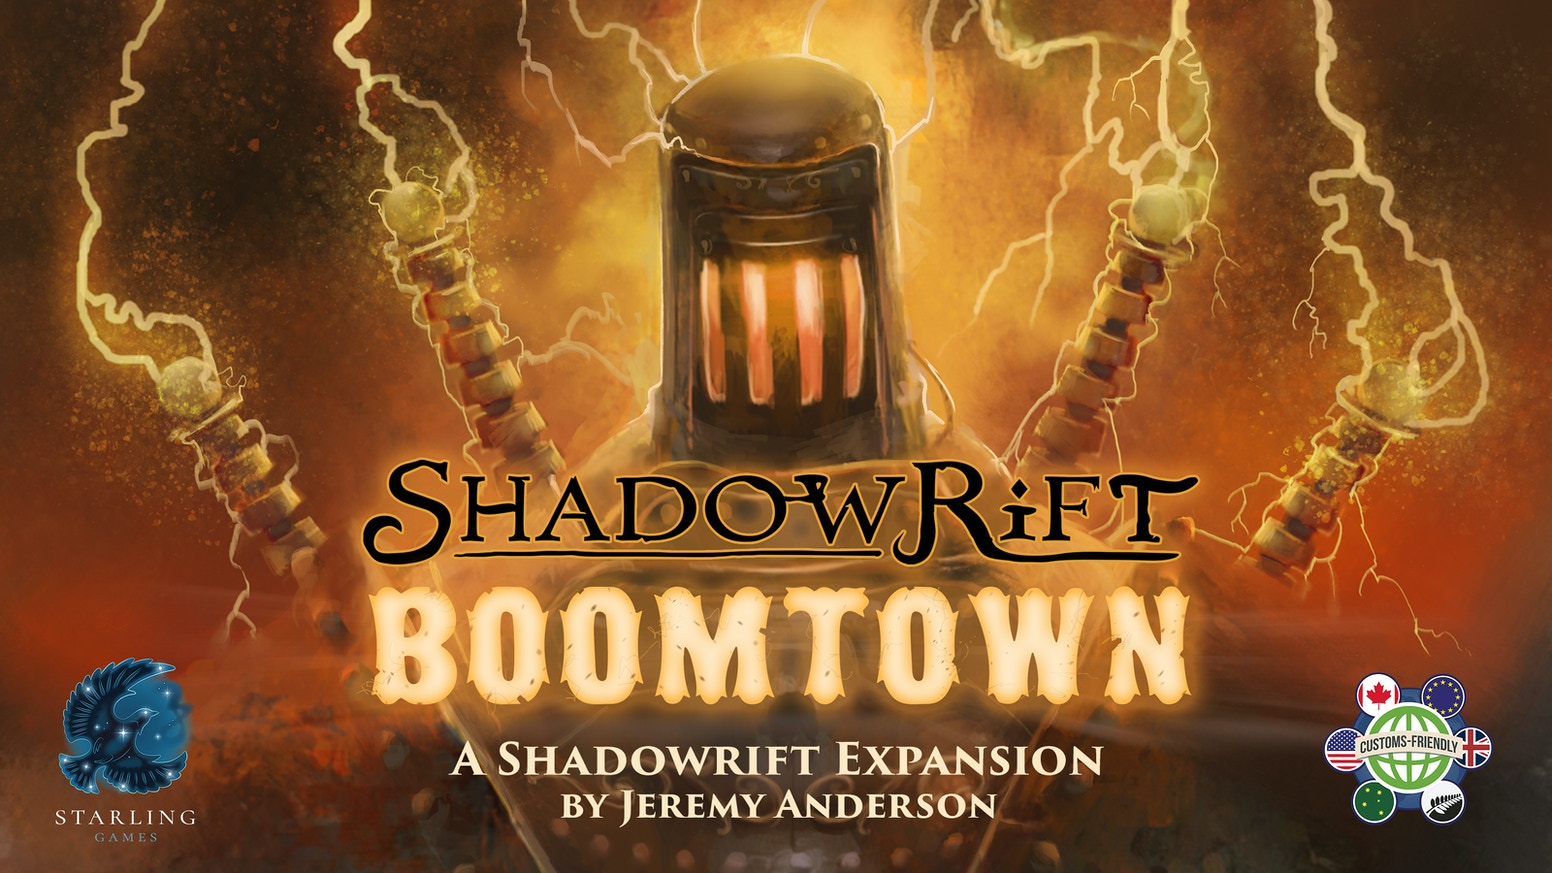 An explosive new expansion for Shadowrift!